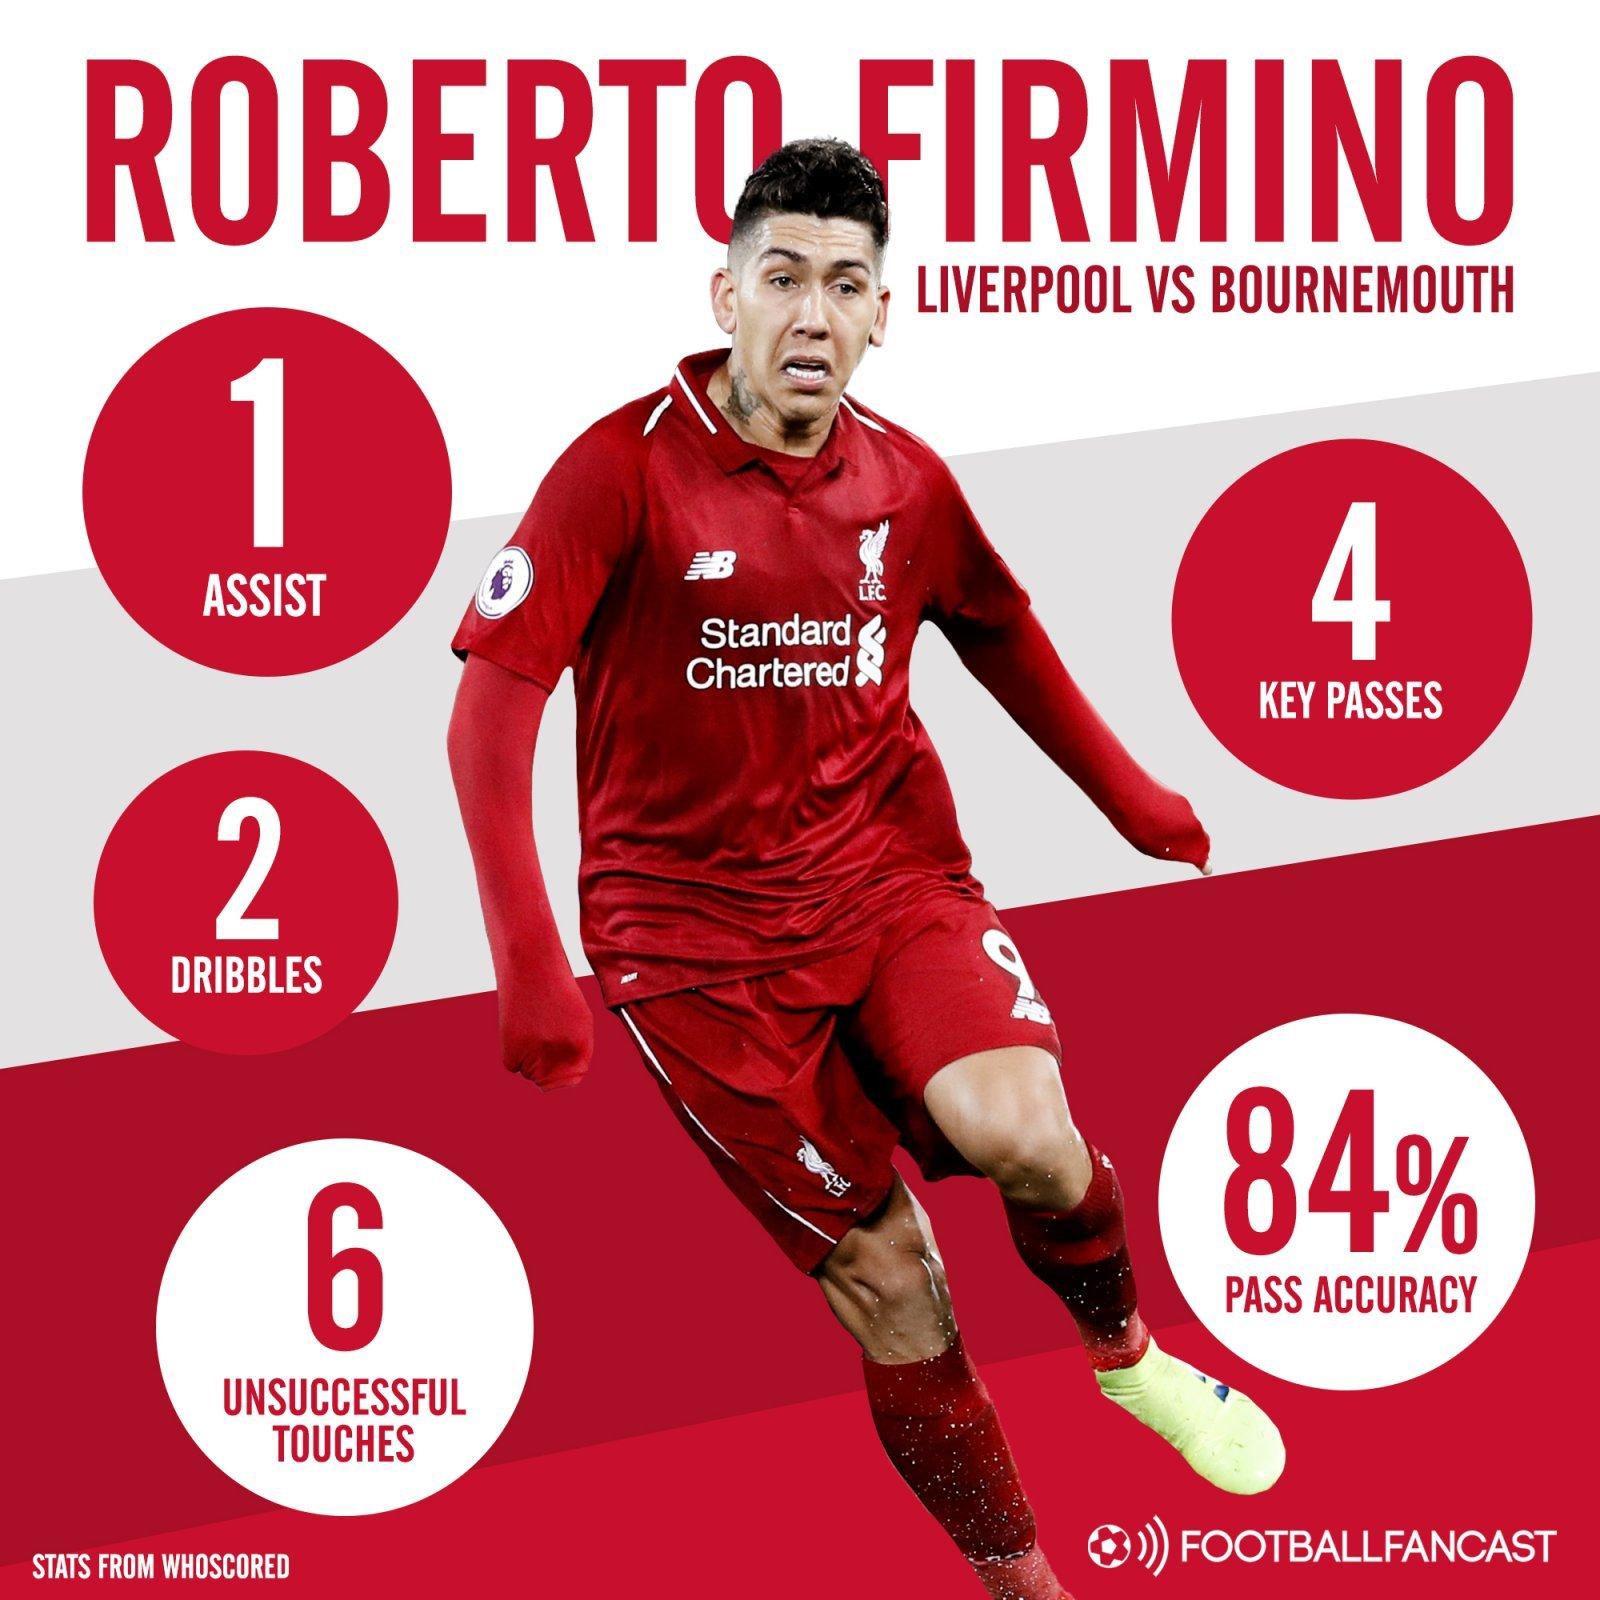 Roberto Firmino stats vs Bournemouth - Opinion: £72m-rated Liverpool man has rediscovered magic touch at ideal time for Klopp